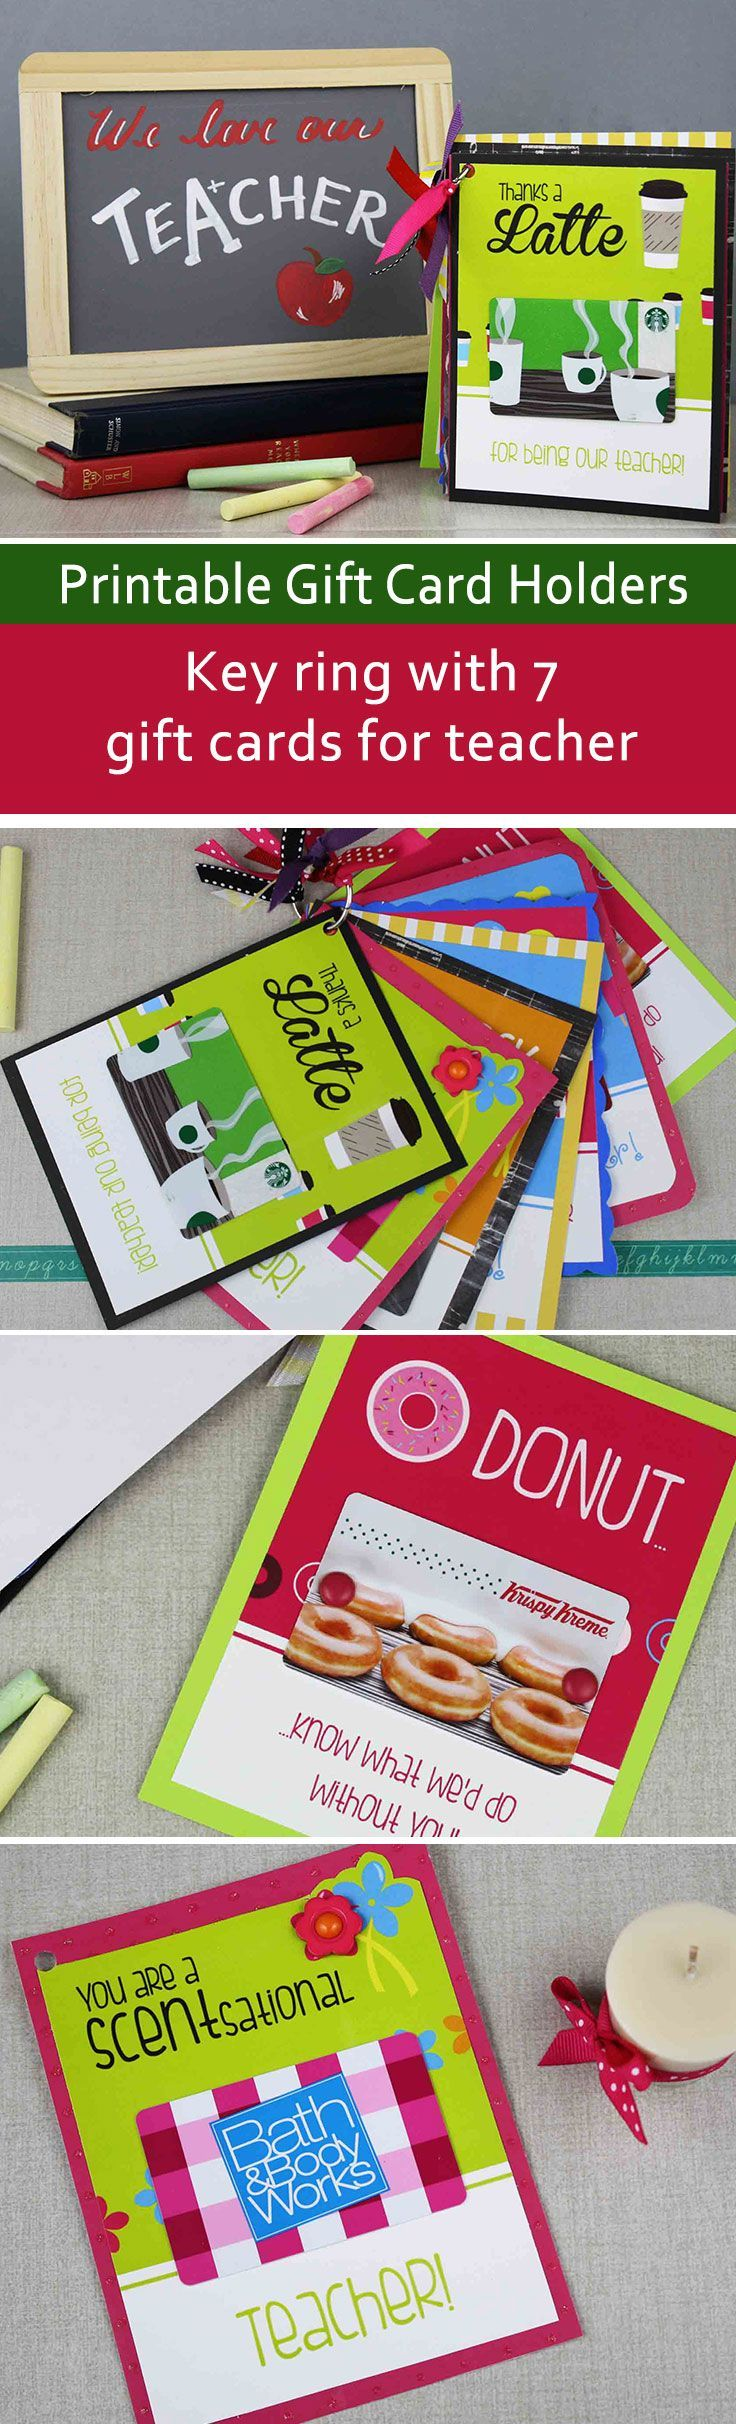 Free gift card holders key ring full of gift cards for